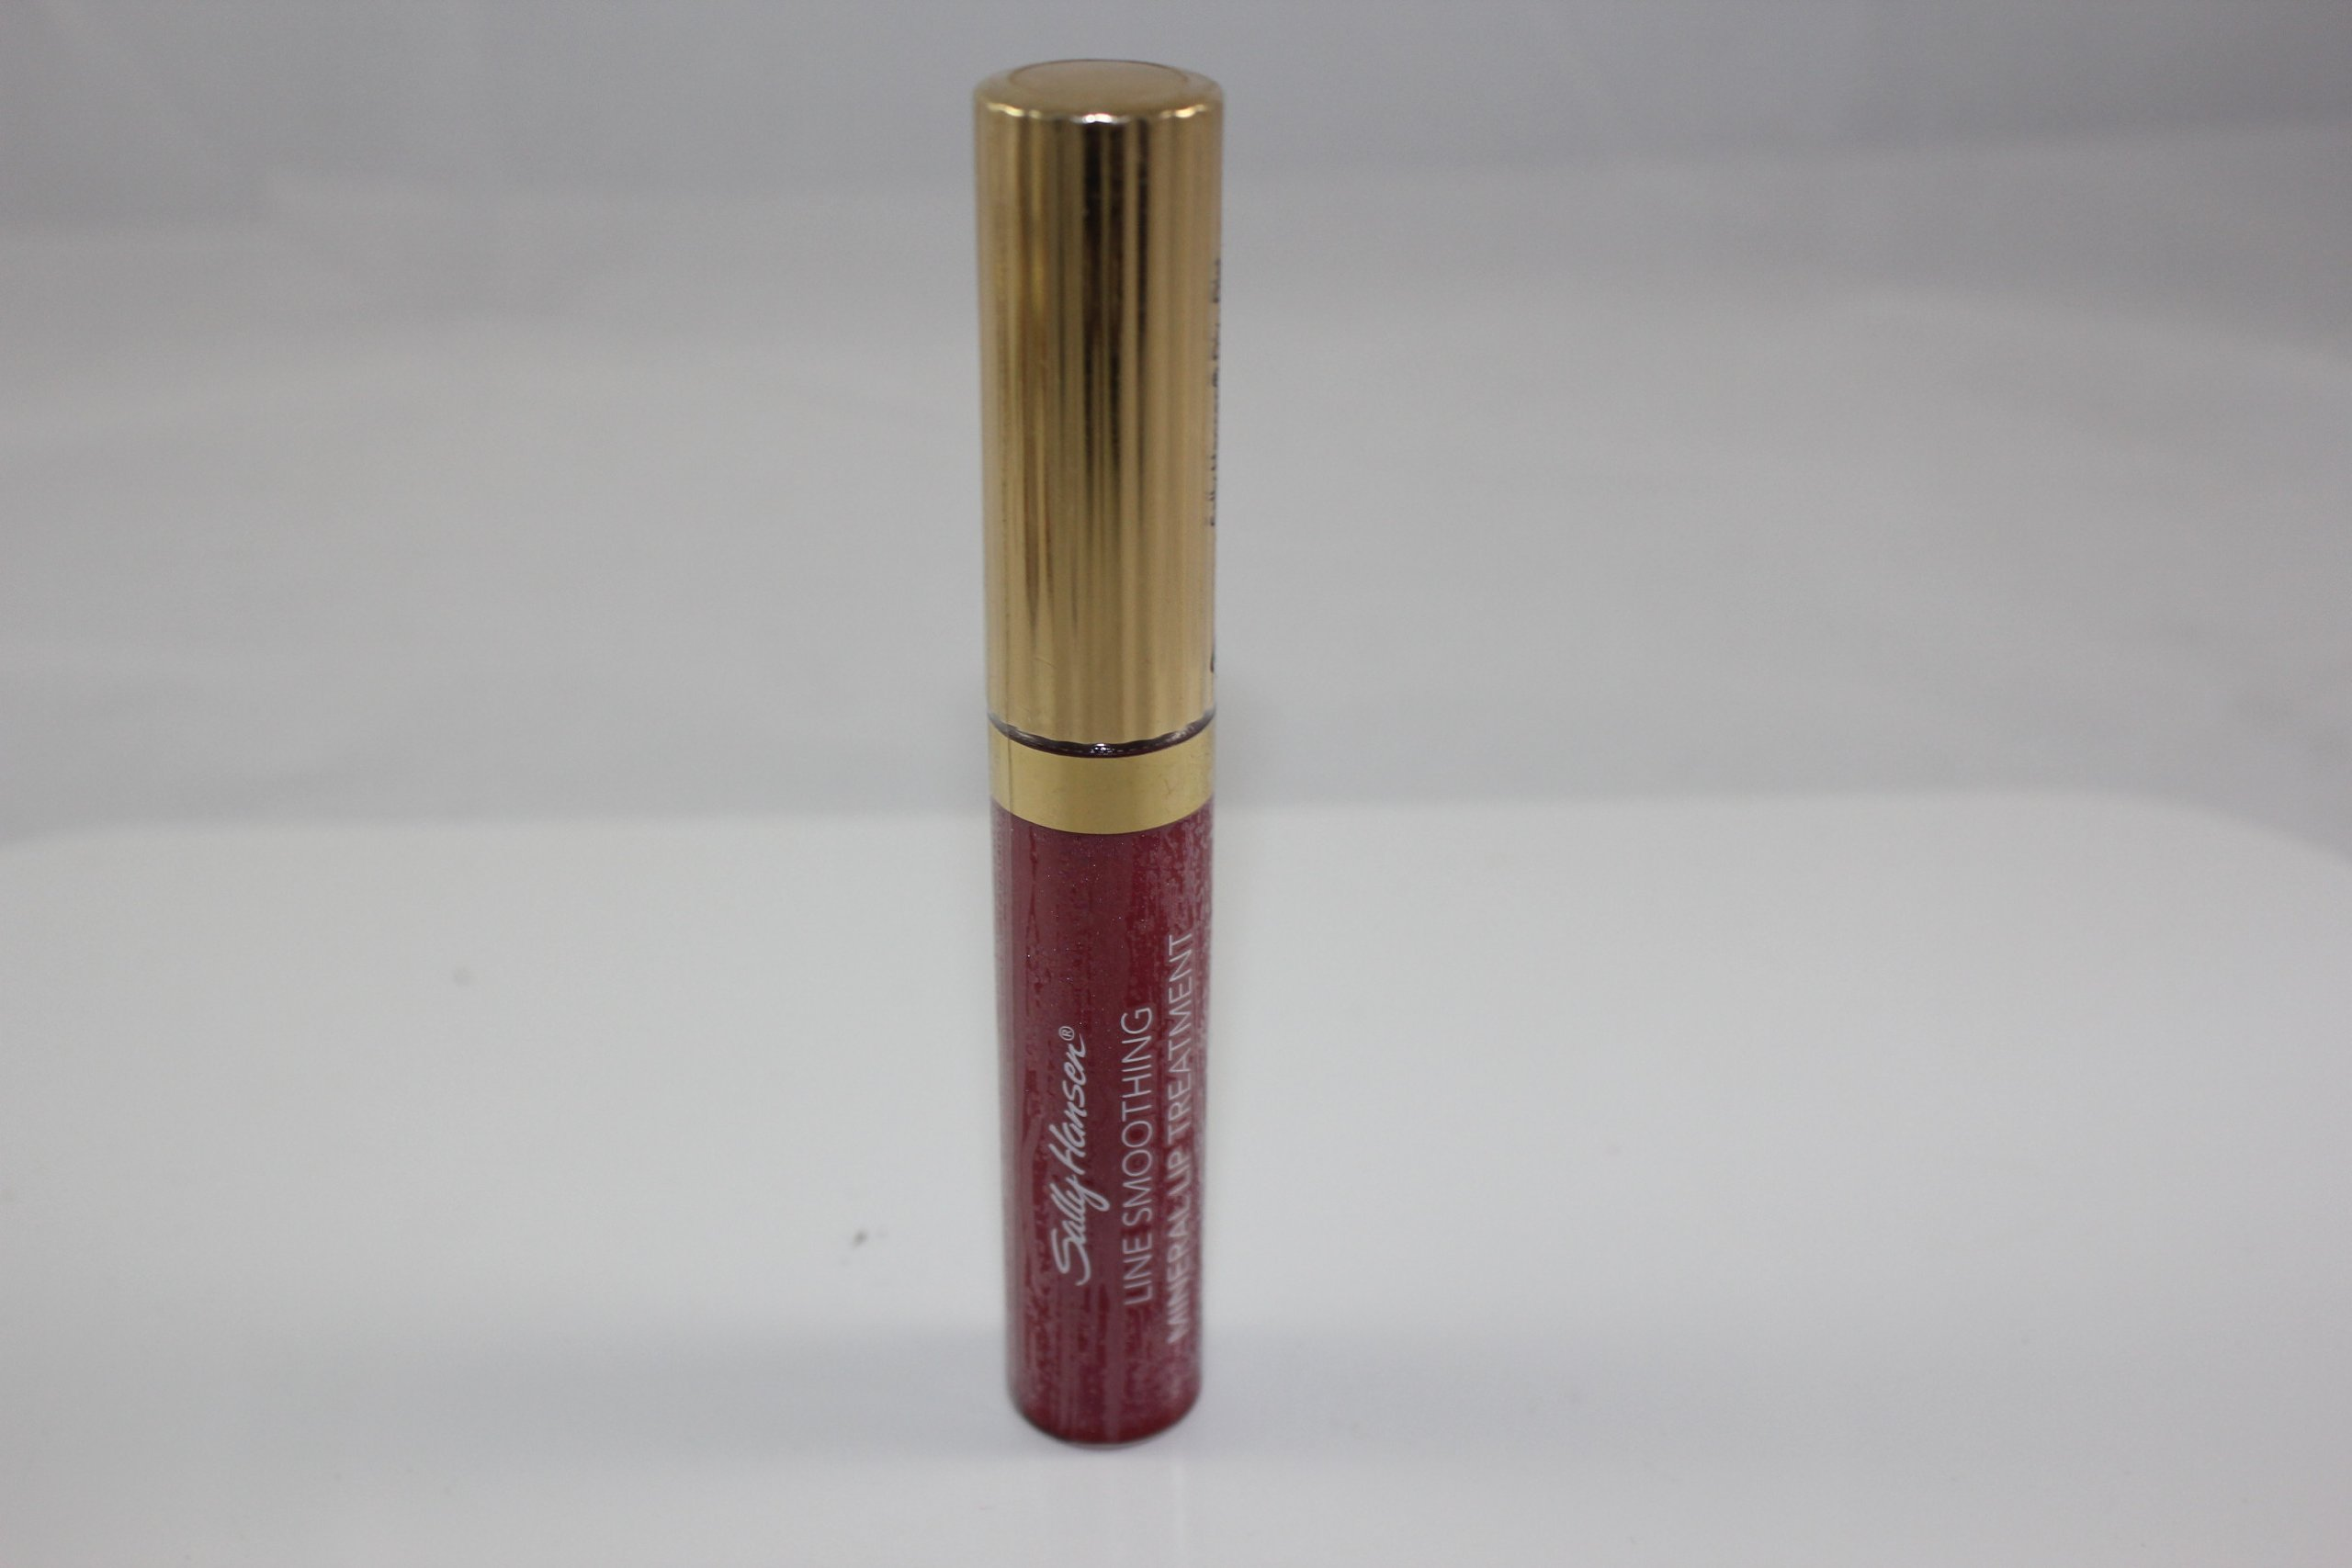 Sally Hansen Line Smoothing Mineral Lip Treatment Gloss, Ruby 6522-70.